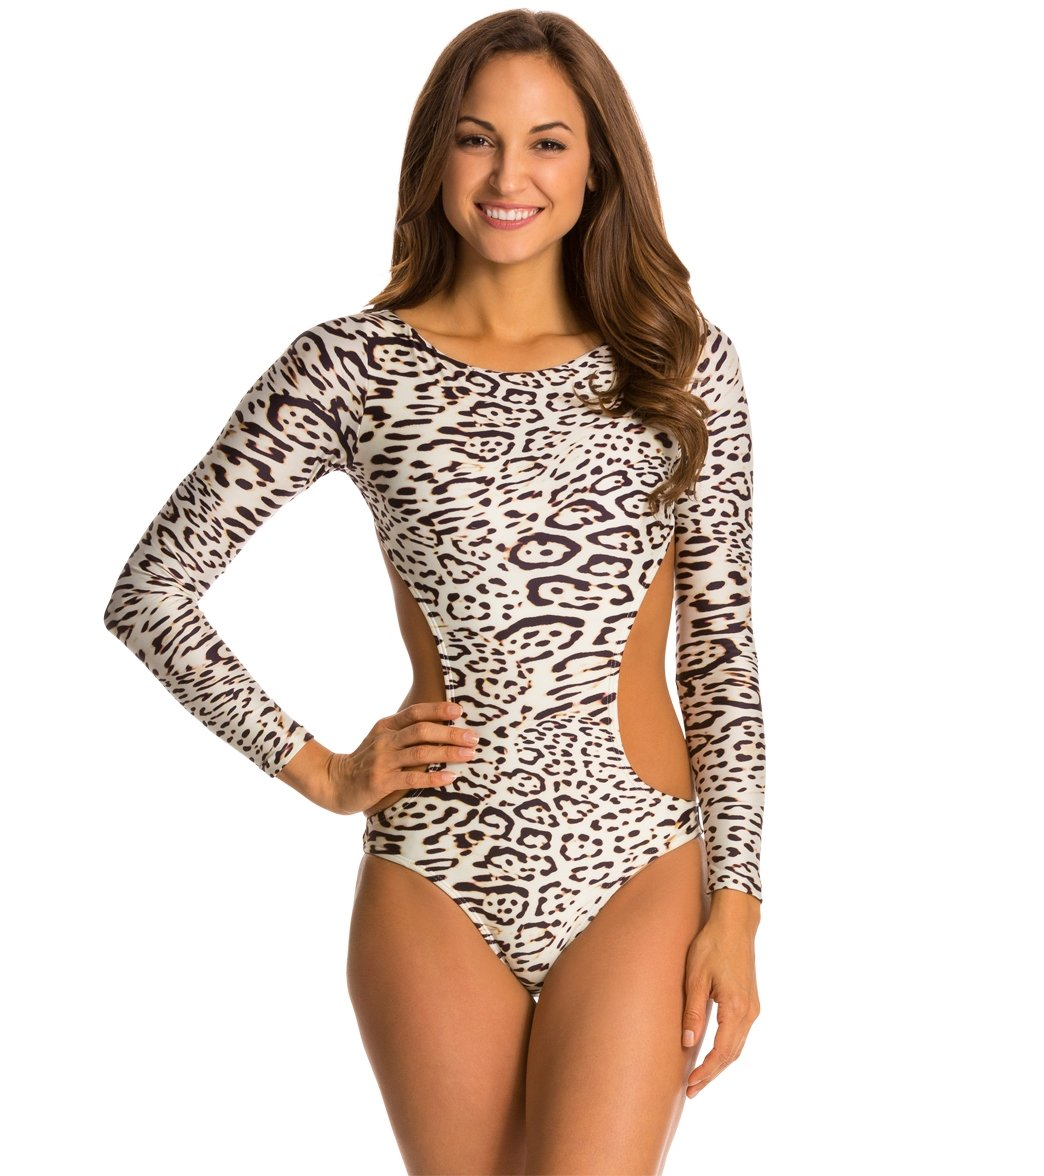 f95afedf8c707 Vix Swimwear Kai Off White Ana L/S Cut Out One Piece Swimsuit at ...